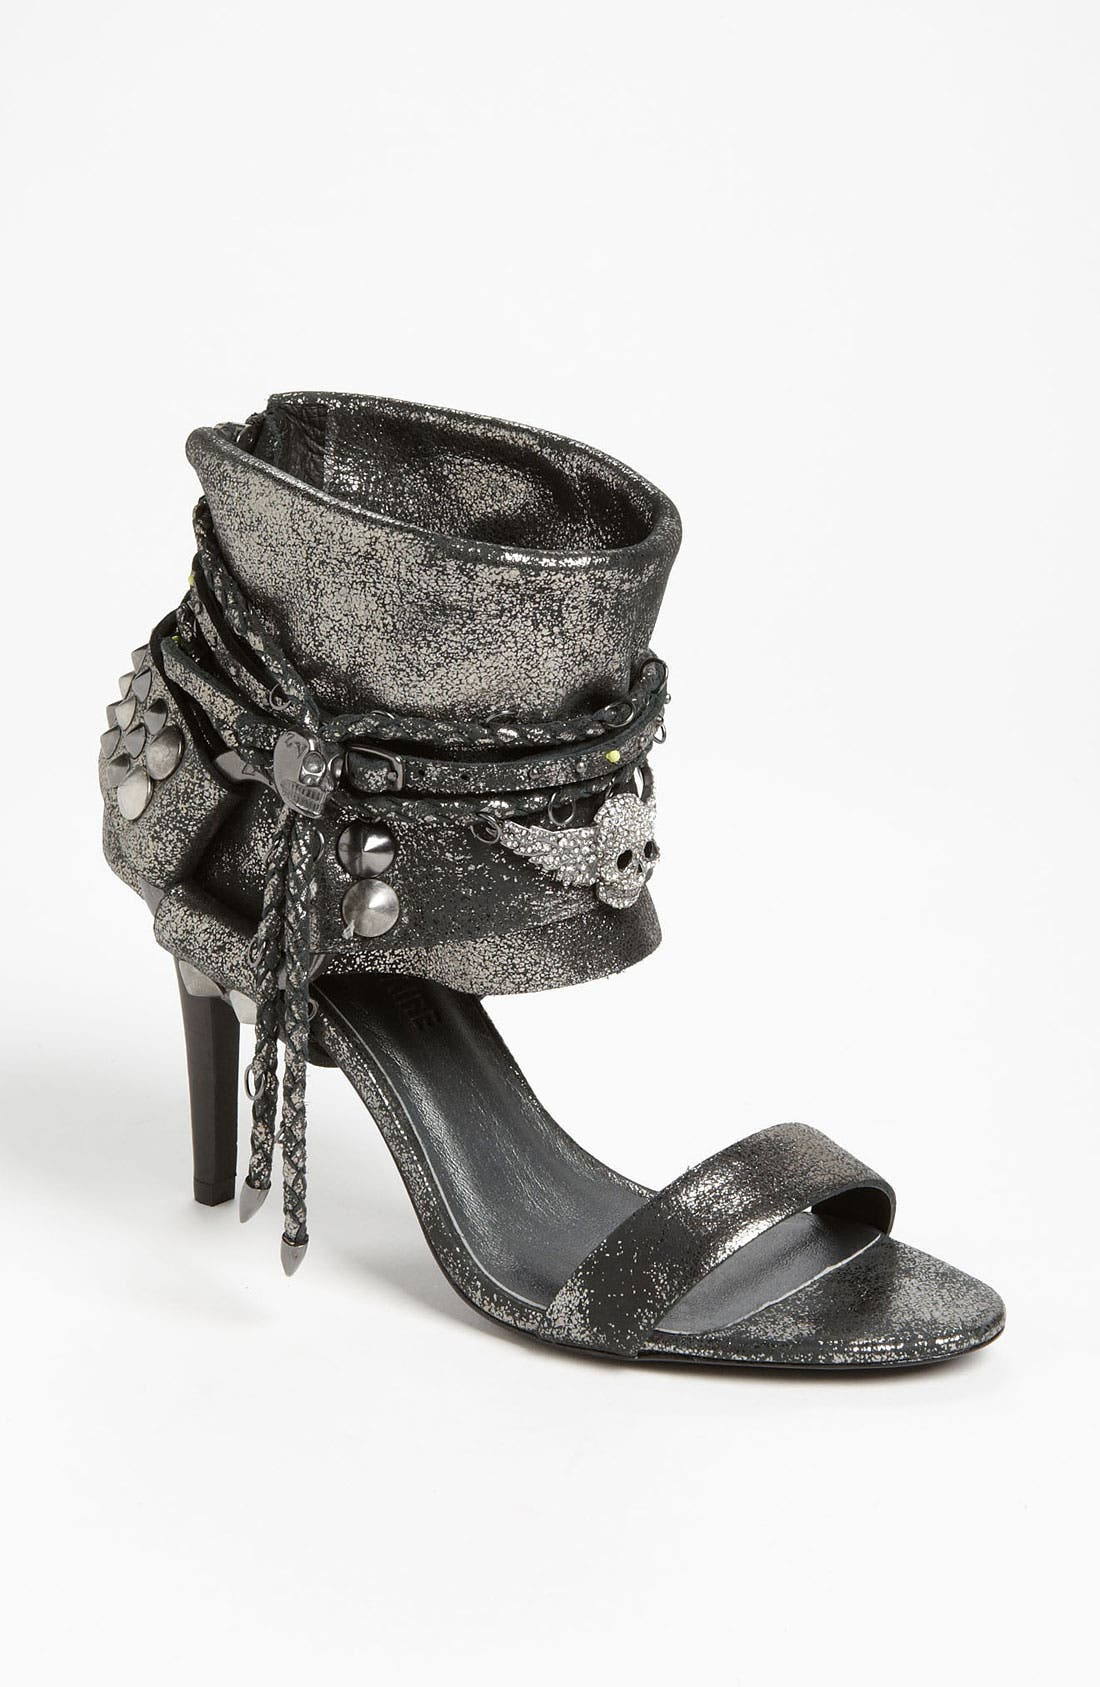 Main Image - Zadig & Voltaire 'Pam' Sandal